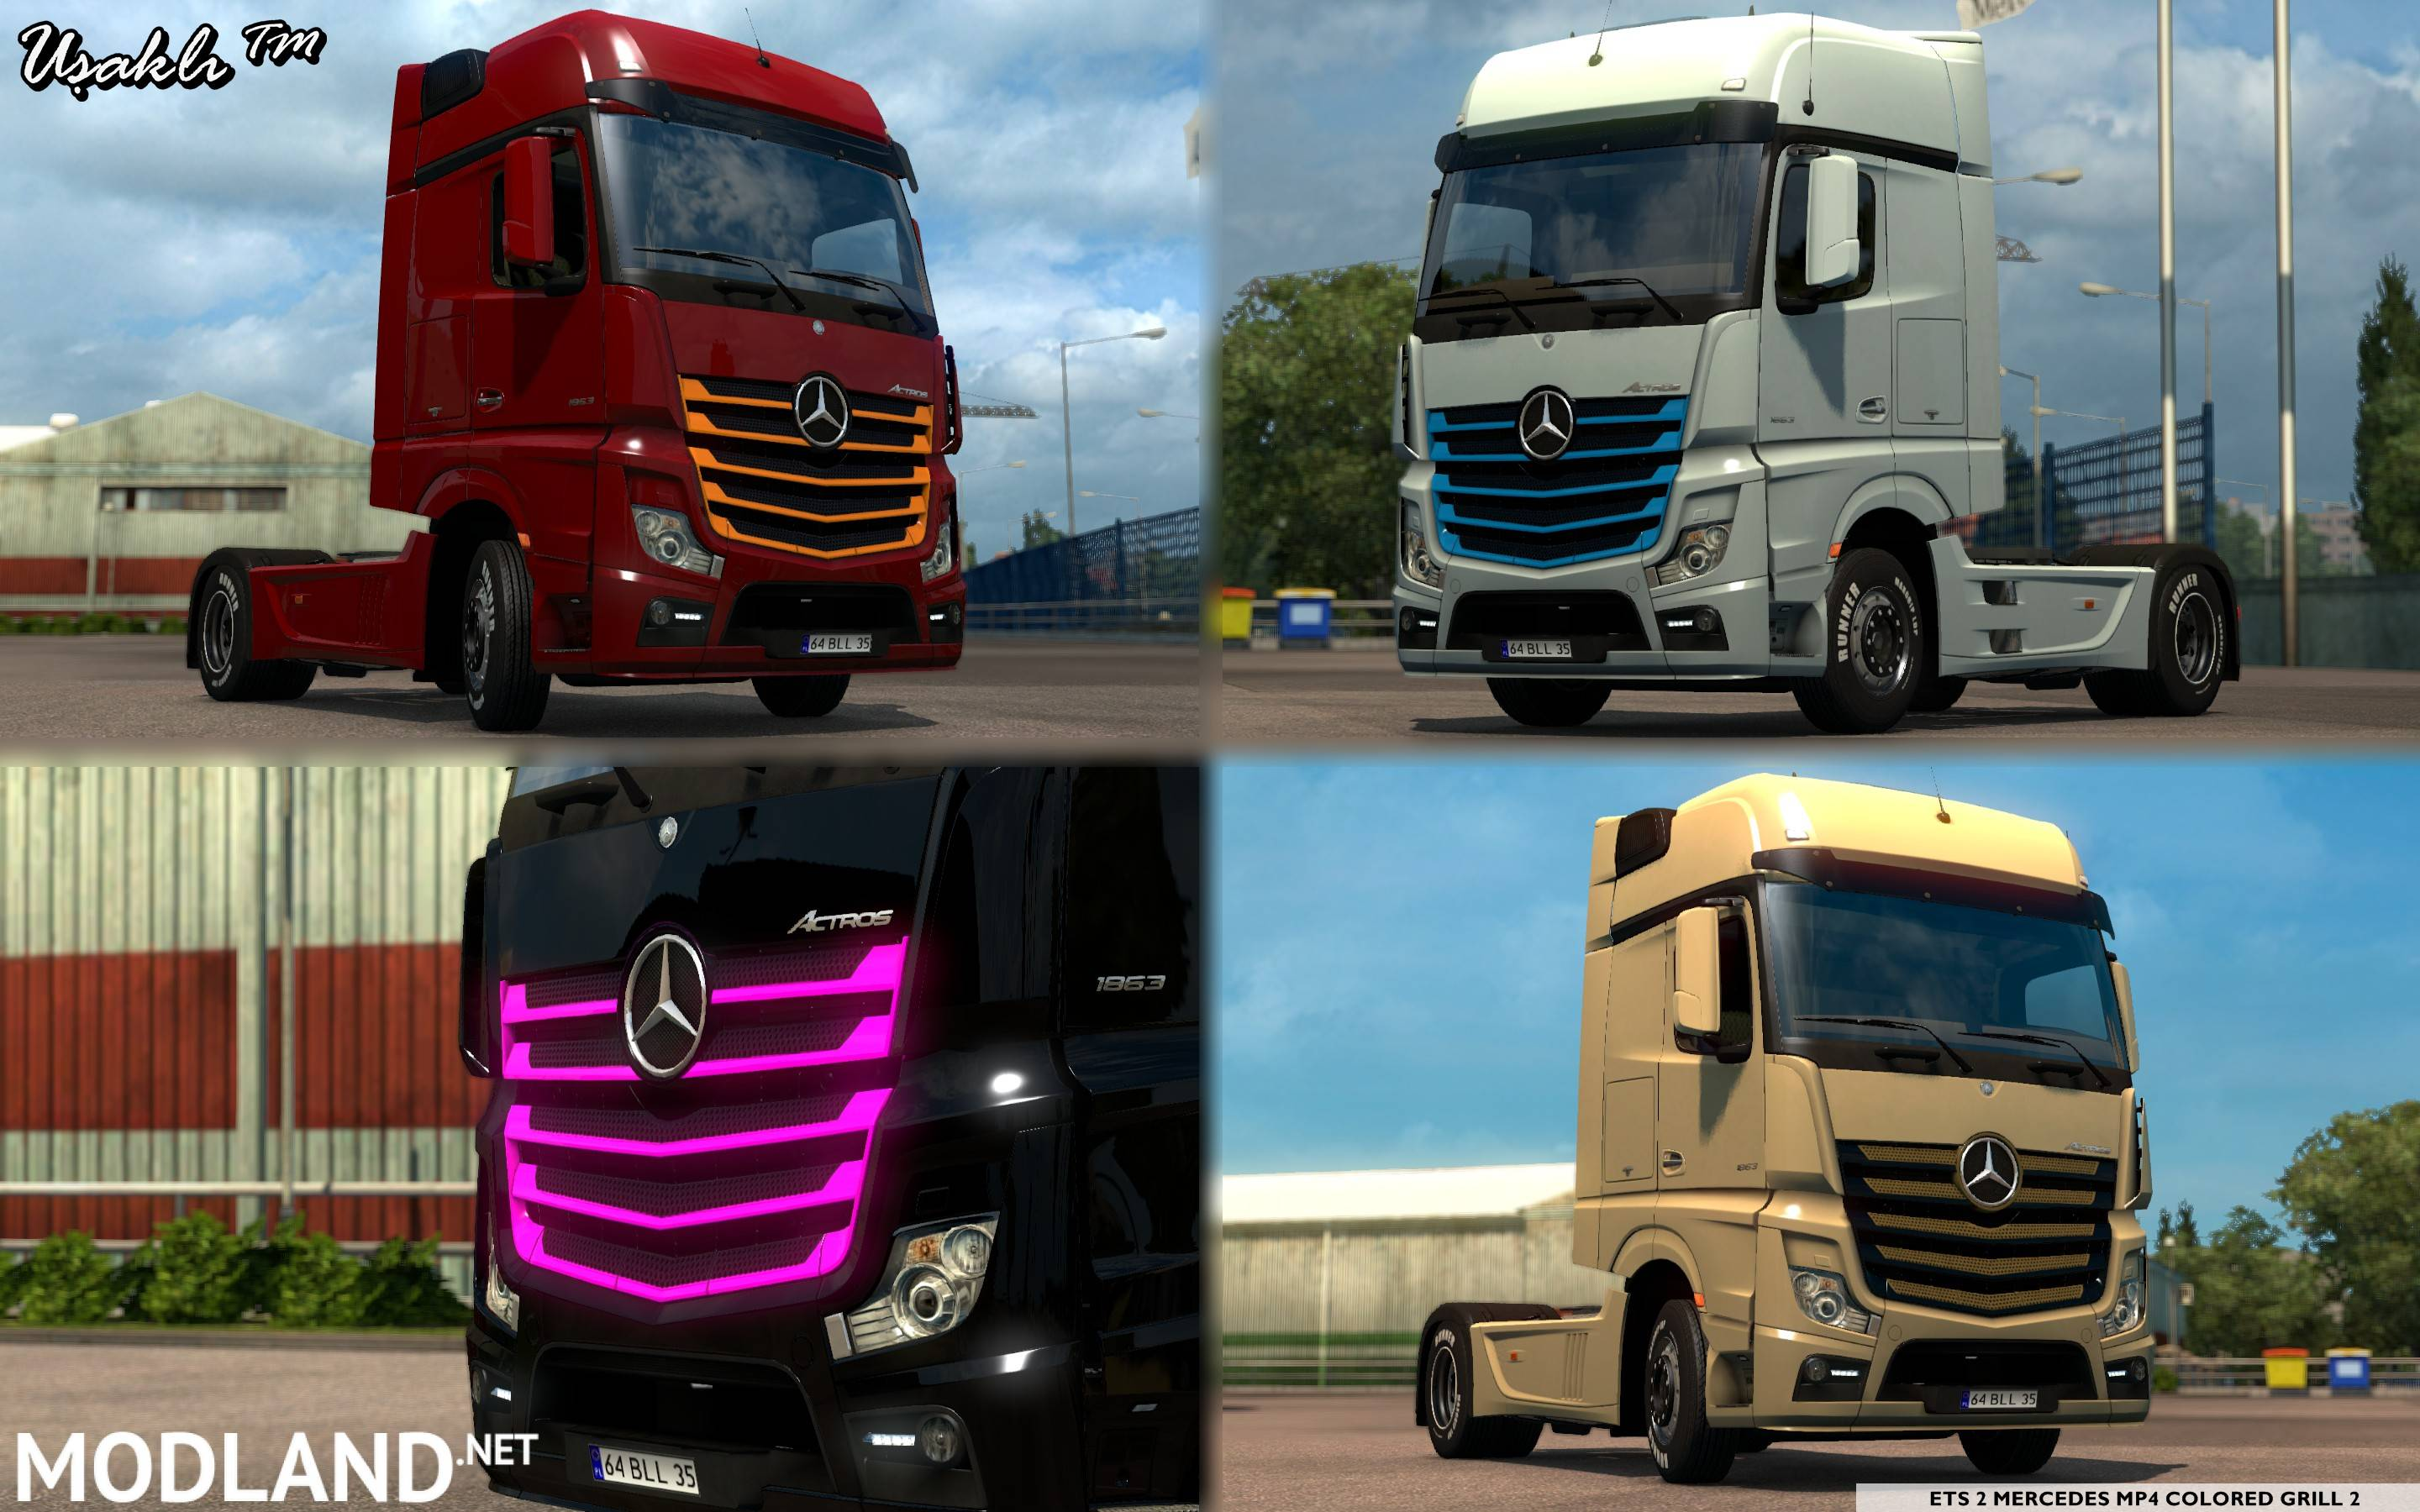 Mercedes Mp4 New Actros 2014 Colored Grill 2 on fiat 500 x 08